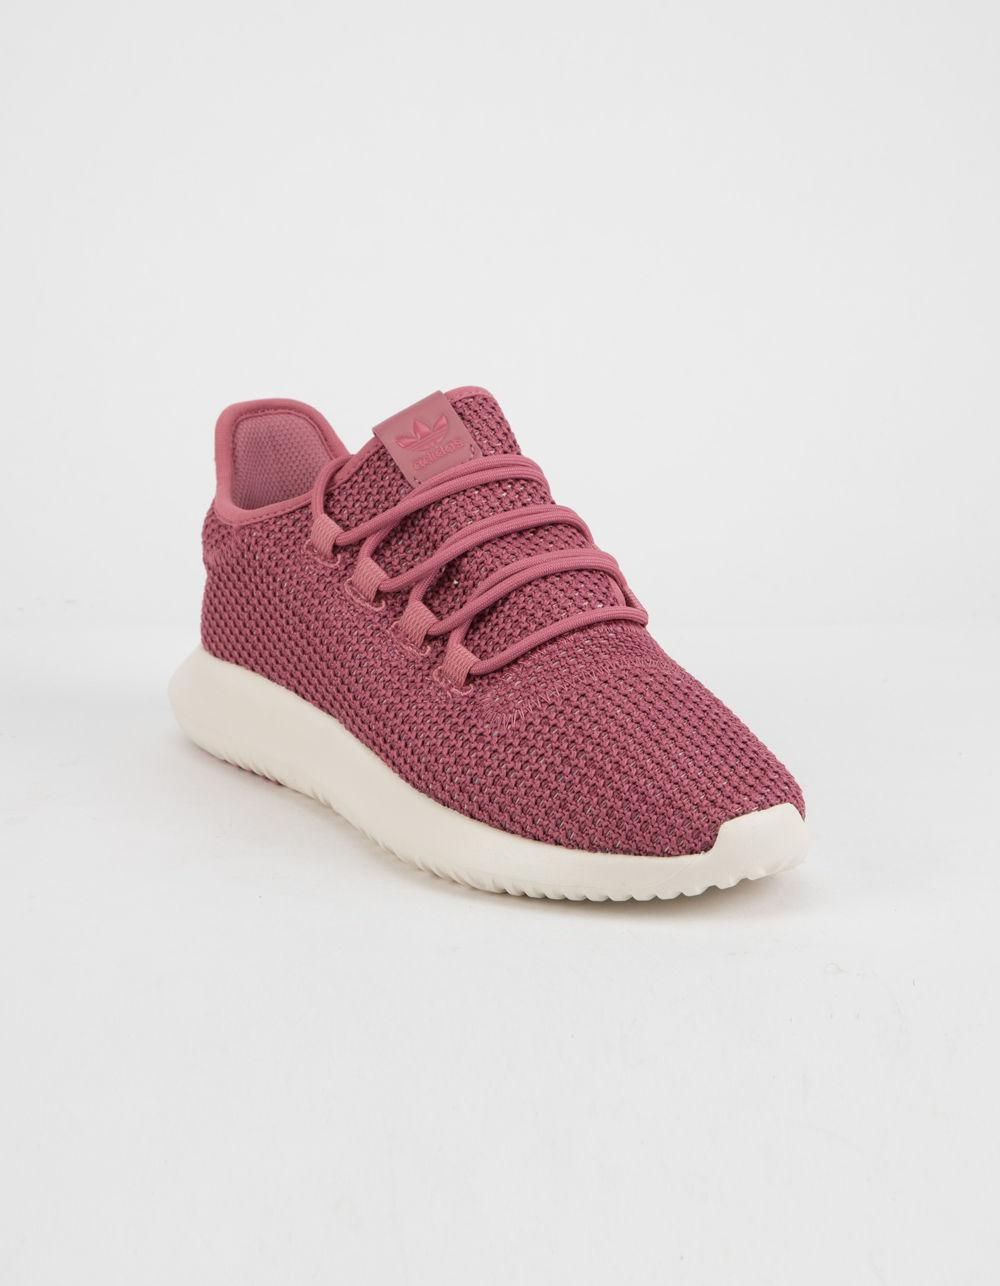 9ce48f95a549 Lyst - adidas Tubular Shadow Trace Maroon   Chalk White Womens Shoes